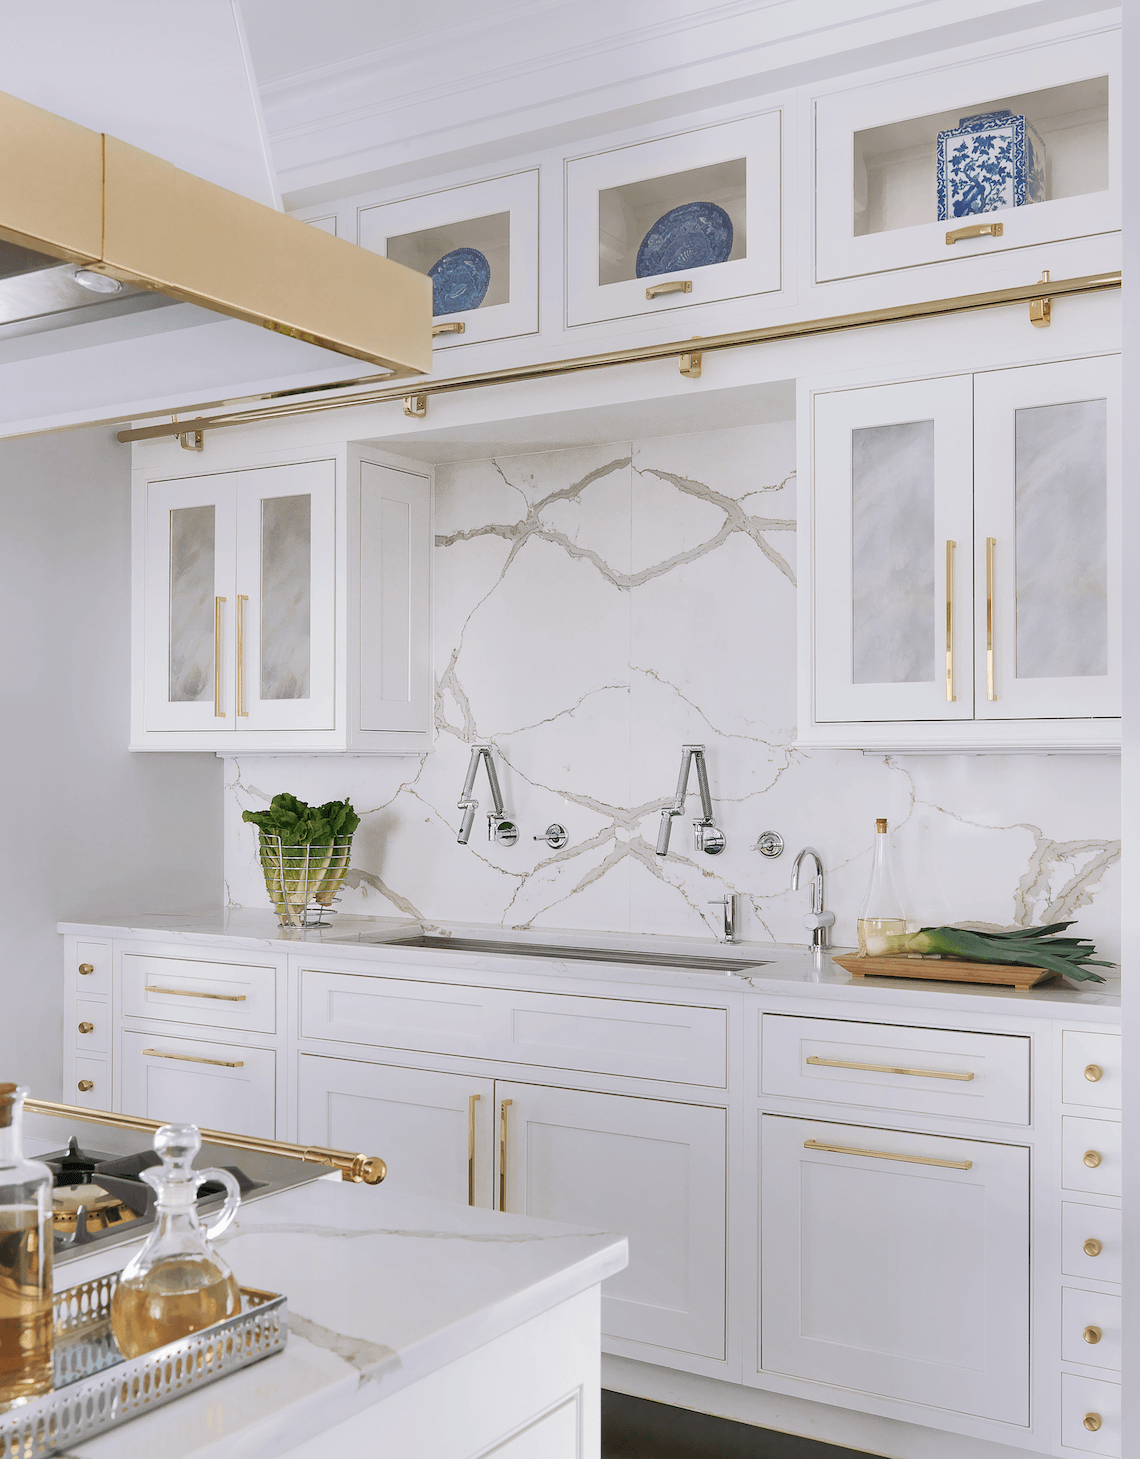 Traditional Kitchen in White and Brass